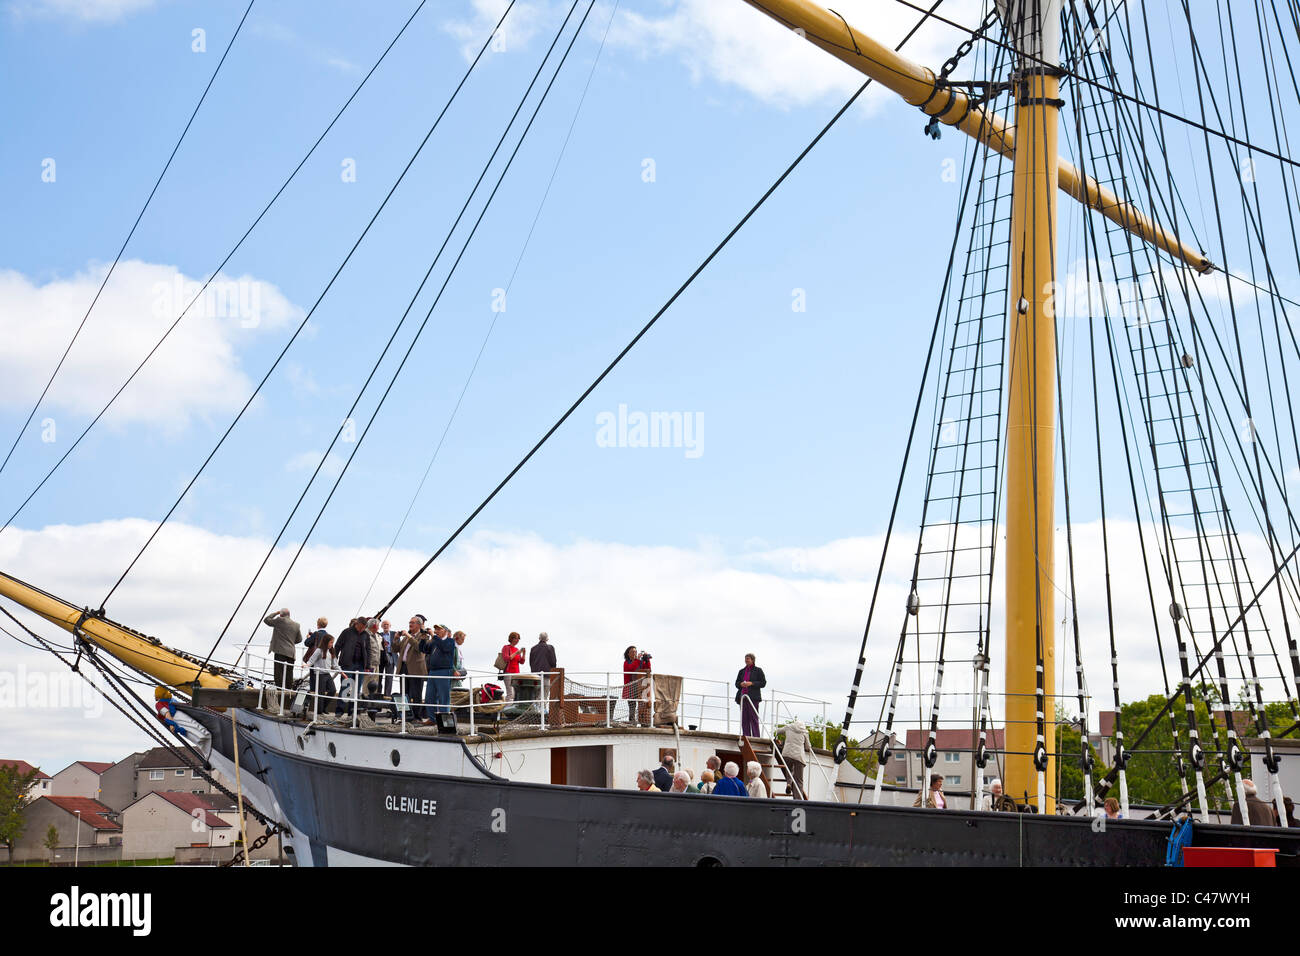 Friends of Glasgow Museum aboard the Tall Ship (Glenlee) at Pointhouse Quay on the Preview Day before its reopening. - Stock Image